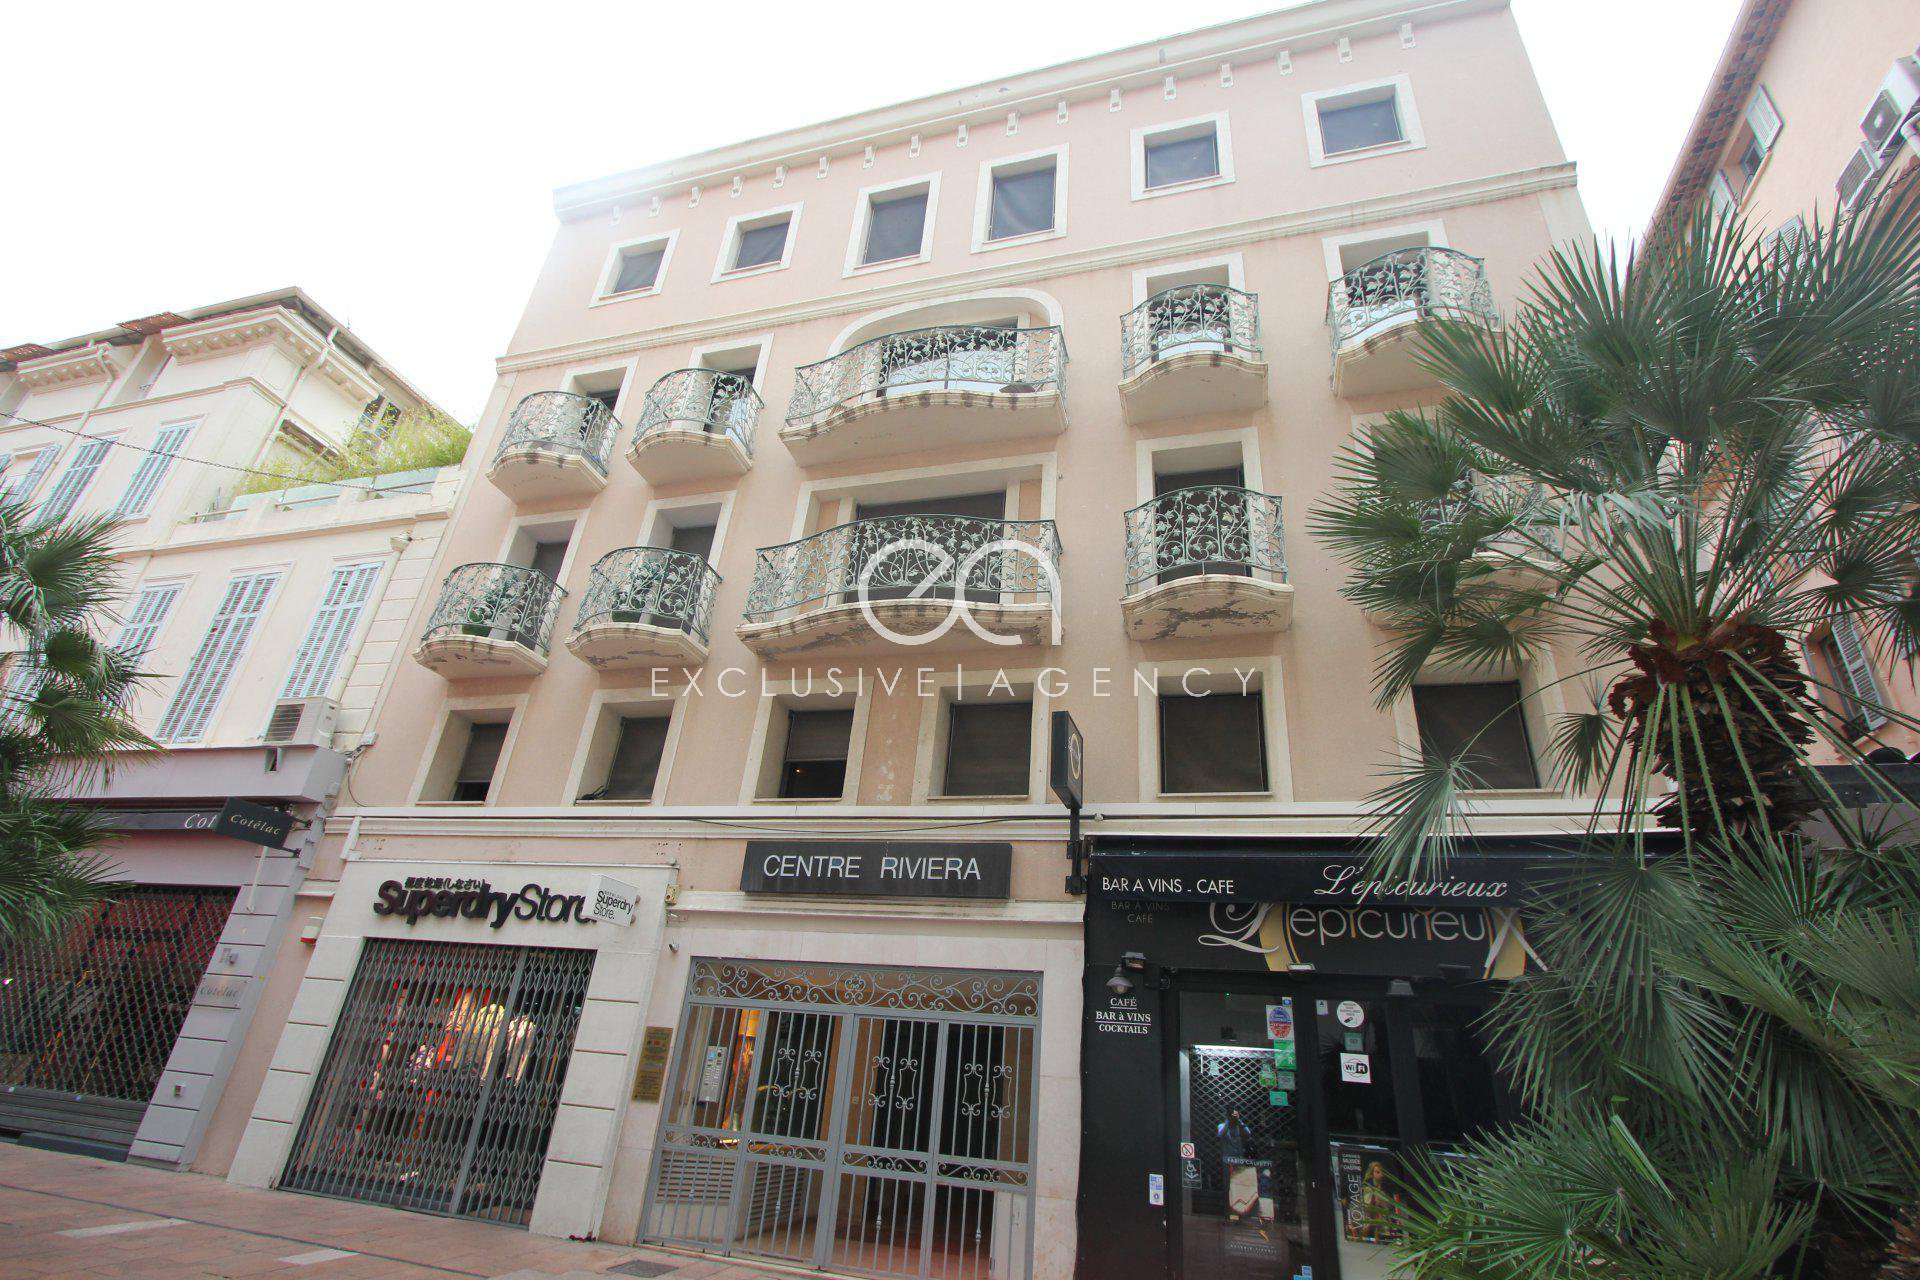 For sale Cannes Banane 1 bedroom apartment of 35sqm ideal rental investment